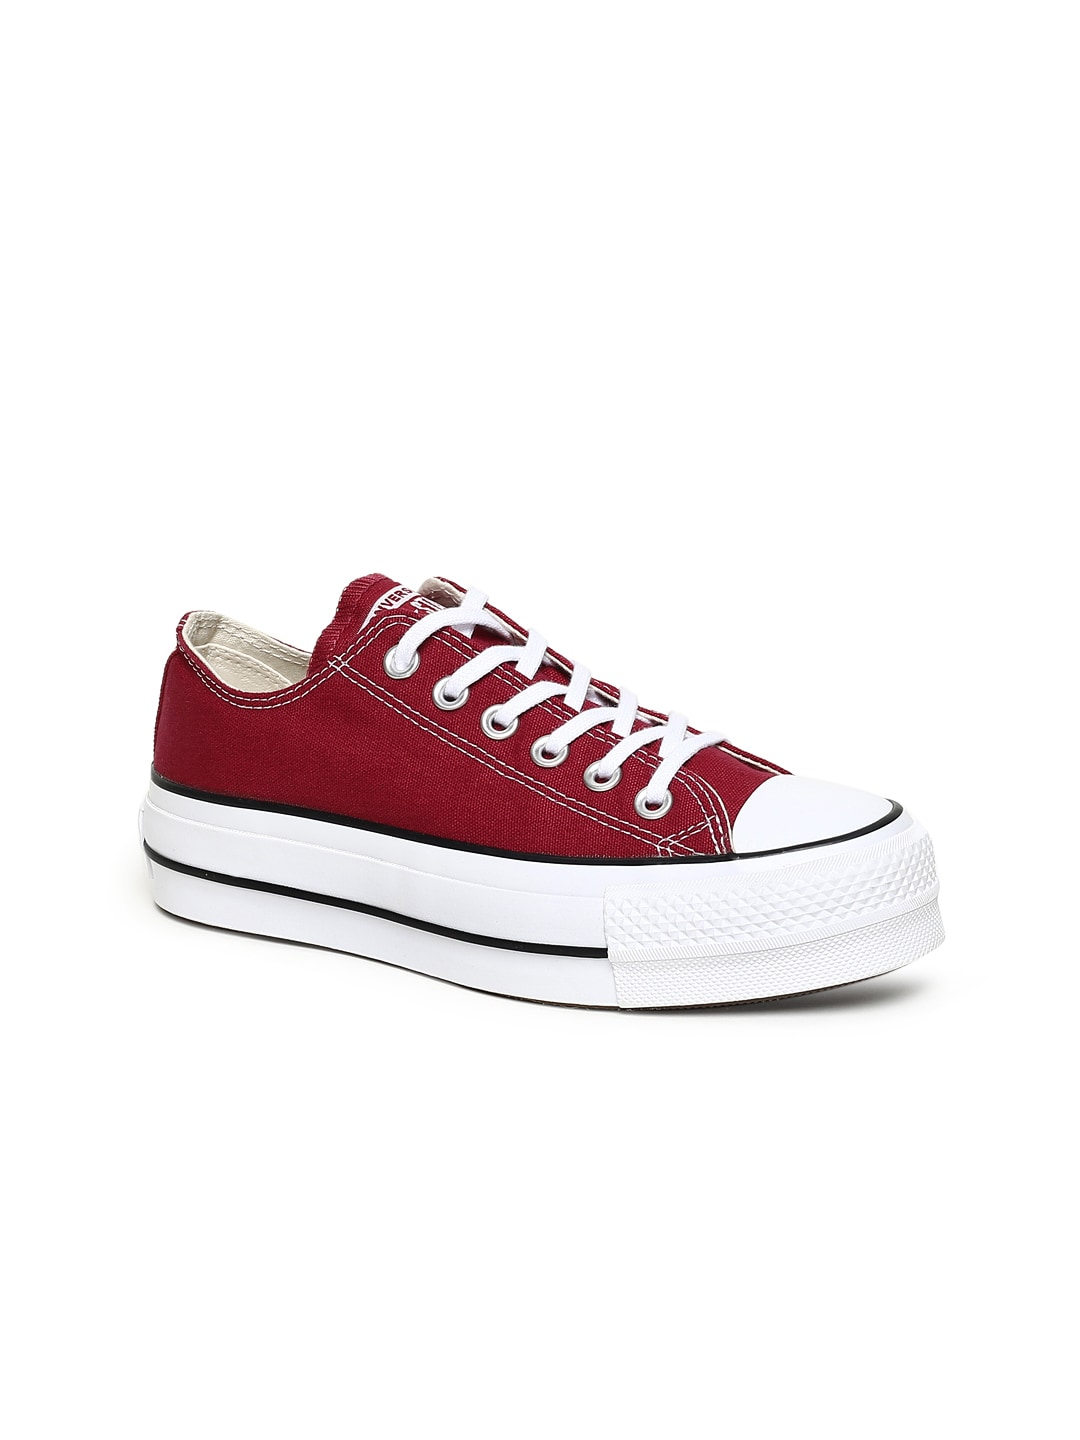 31247d6b942ed8 Converse Shoes - Buy Converse Canvas Shoes   Sneakers Online